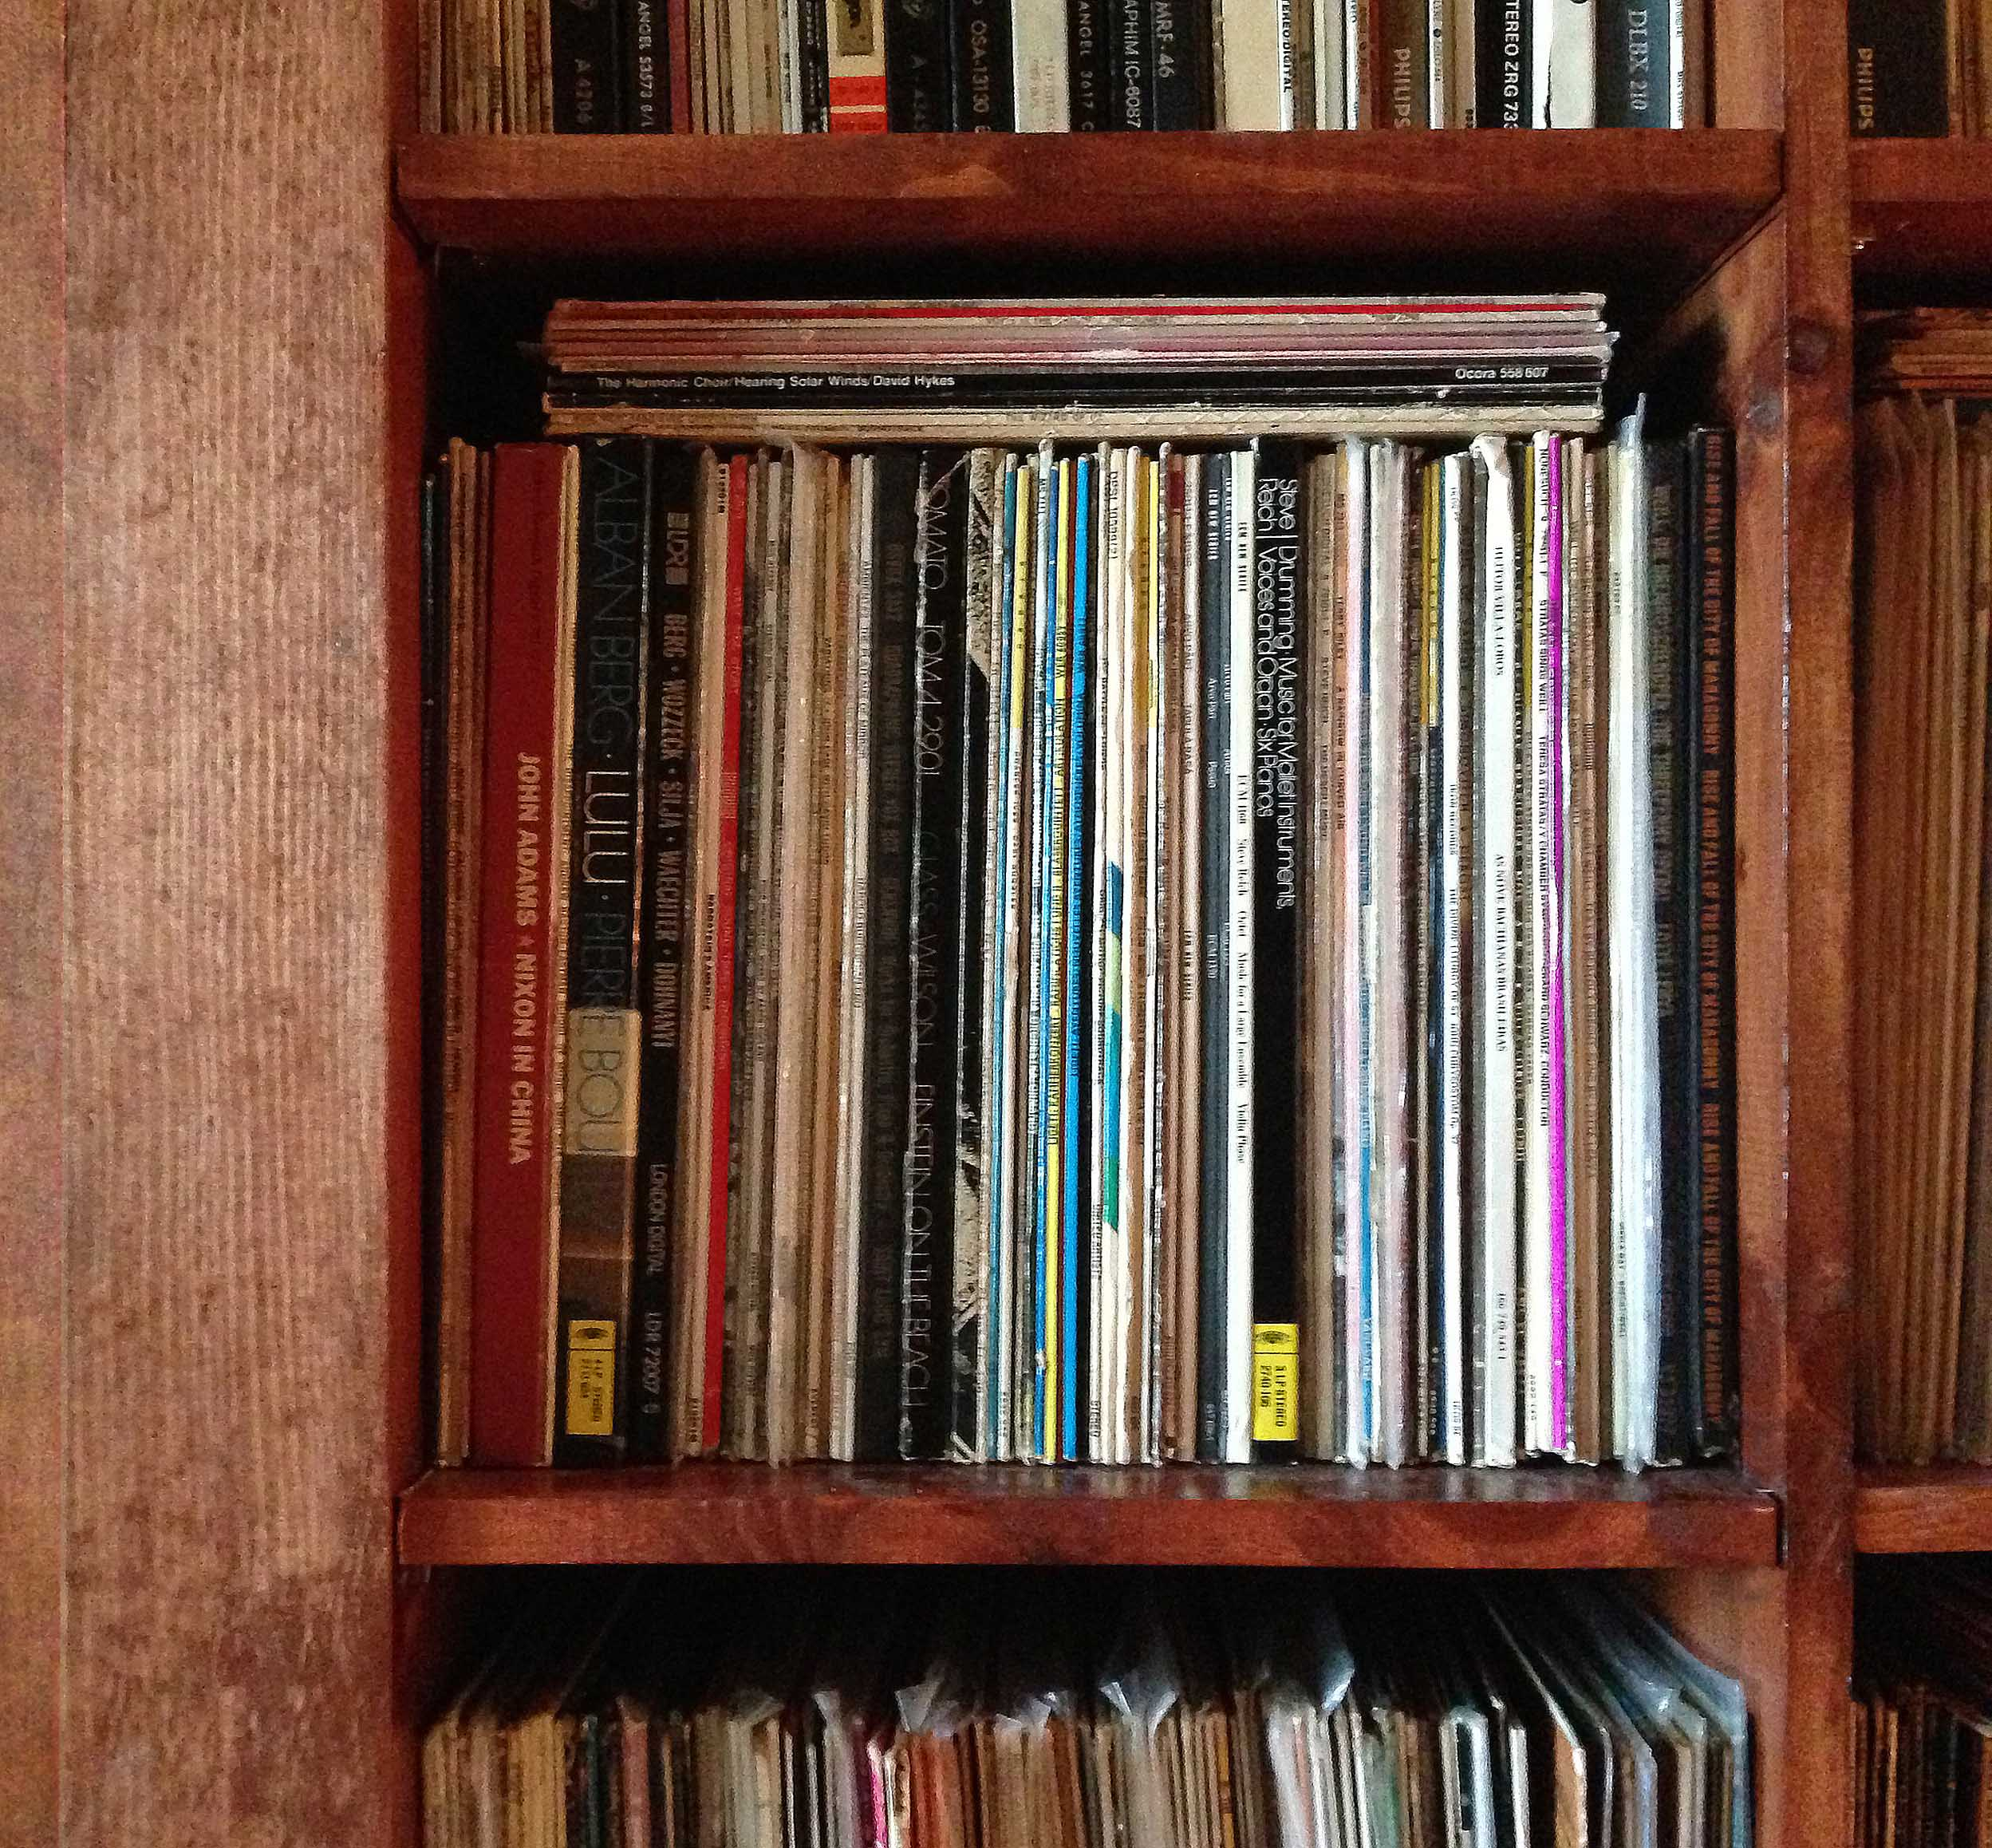 The Vinyl Library